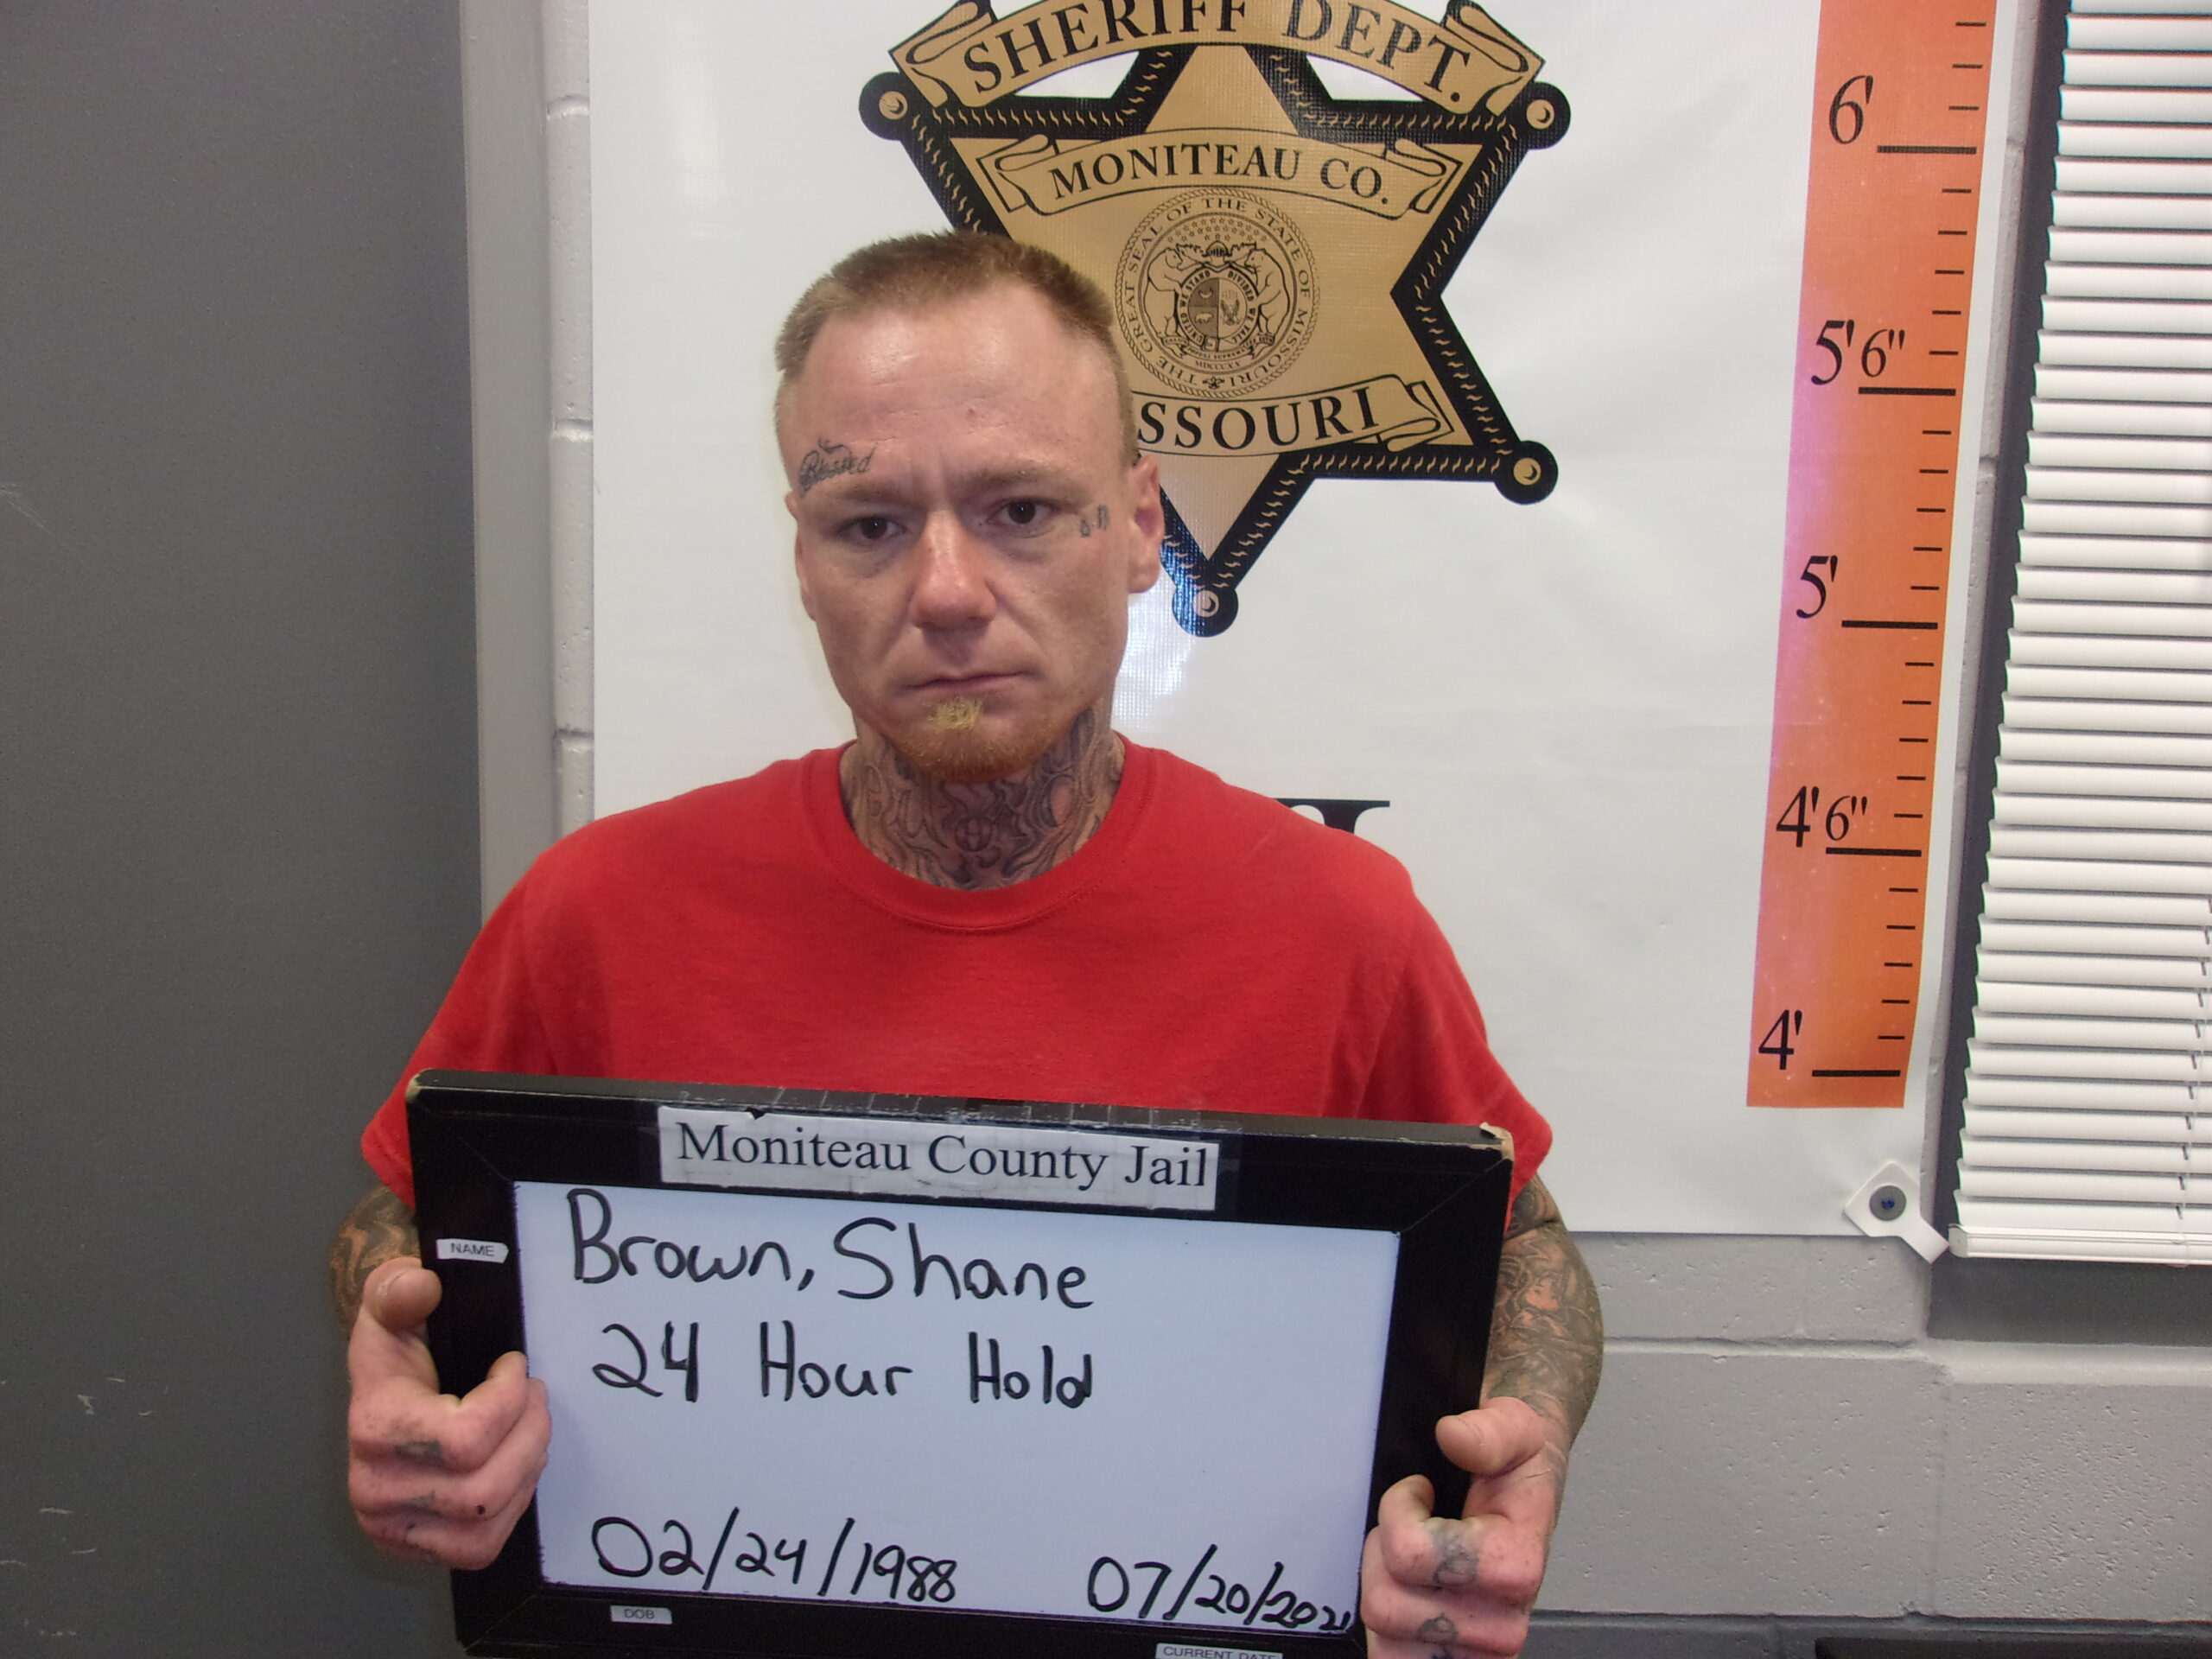 Shane Brown faces two charges of drug possession, resisting arrest and possession of drug paraphernalia.